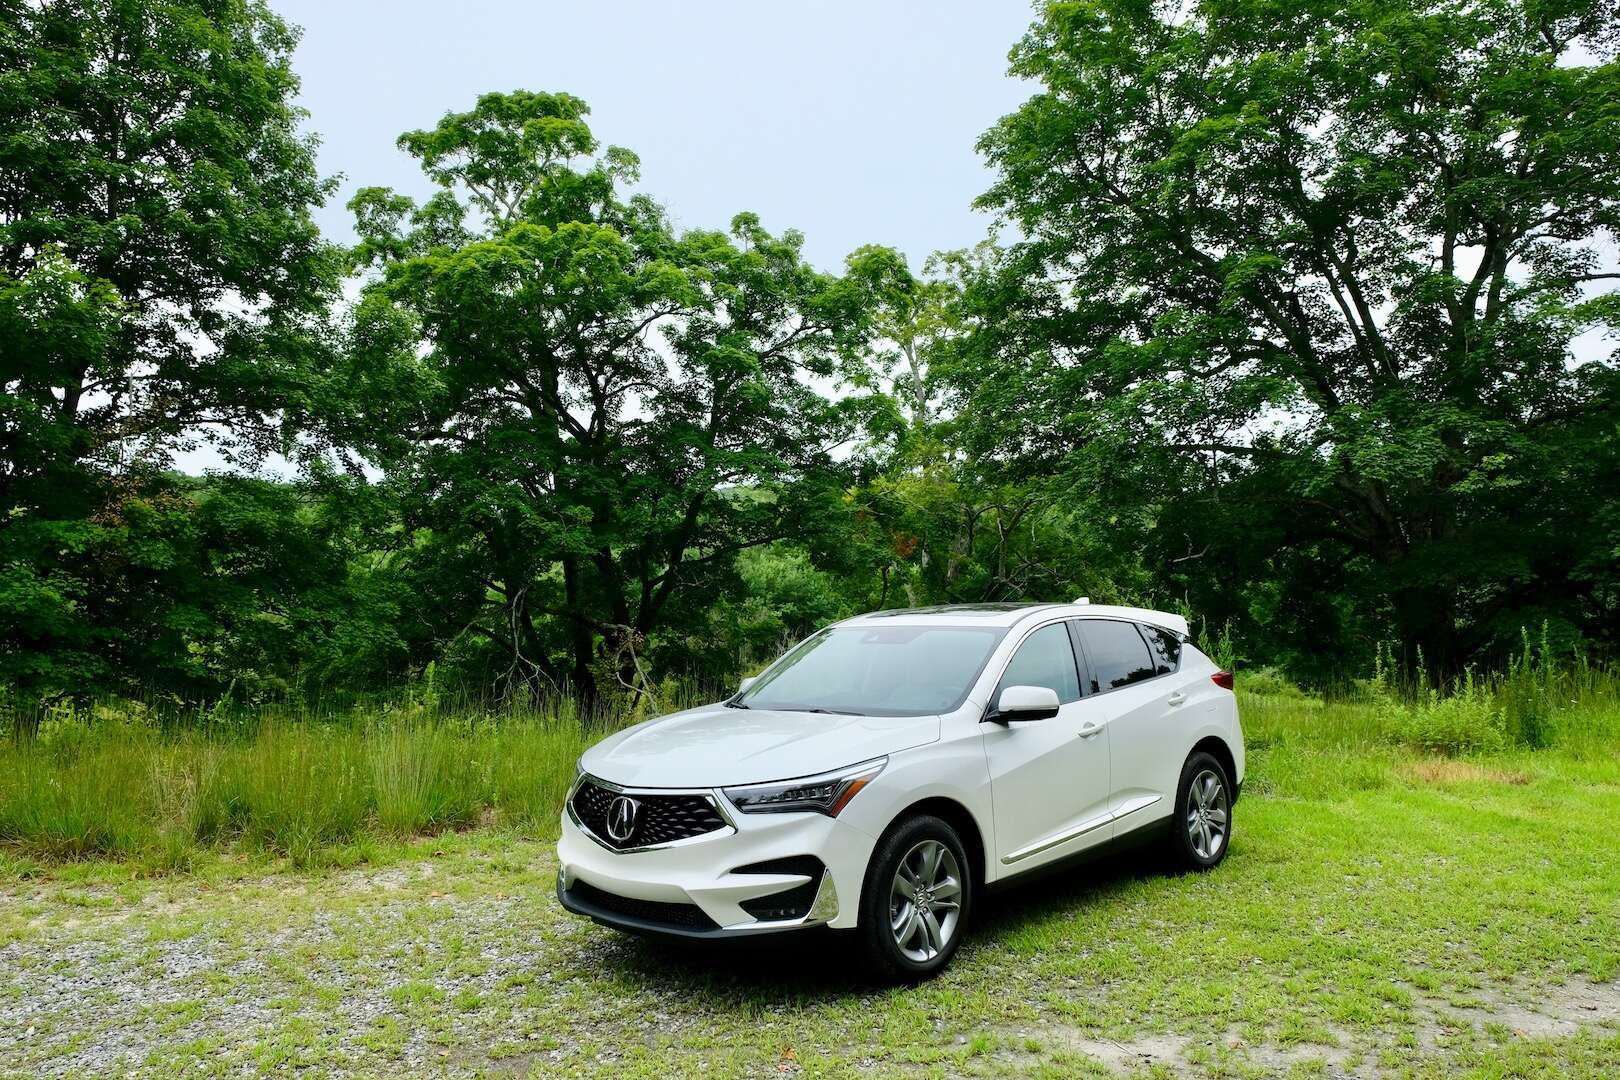 2019 Acura Rdx Advance Sh Awd Review Americas Best Selling Compact Basic Remote Start Walkthrough On Your Nissan Infiniti Vehicle Lawrence Ulrich